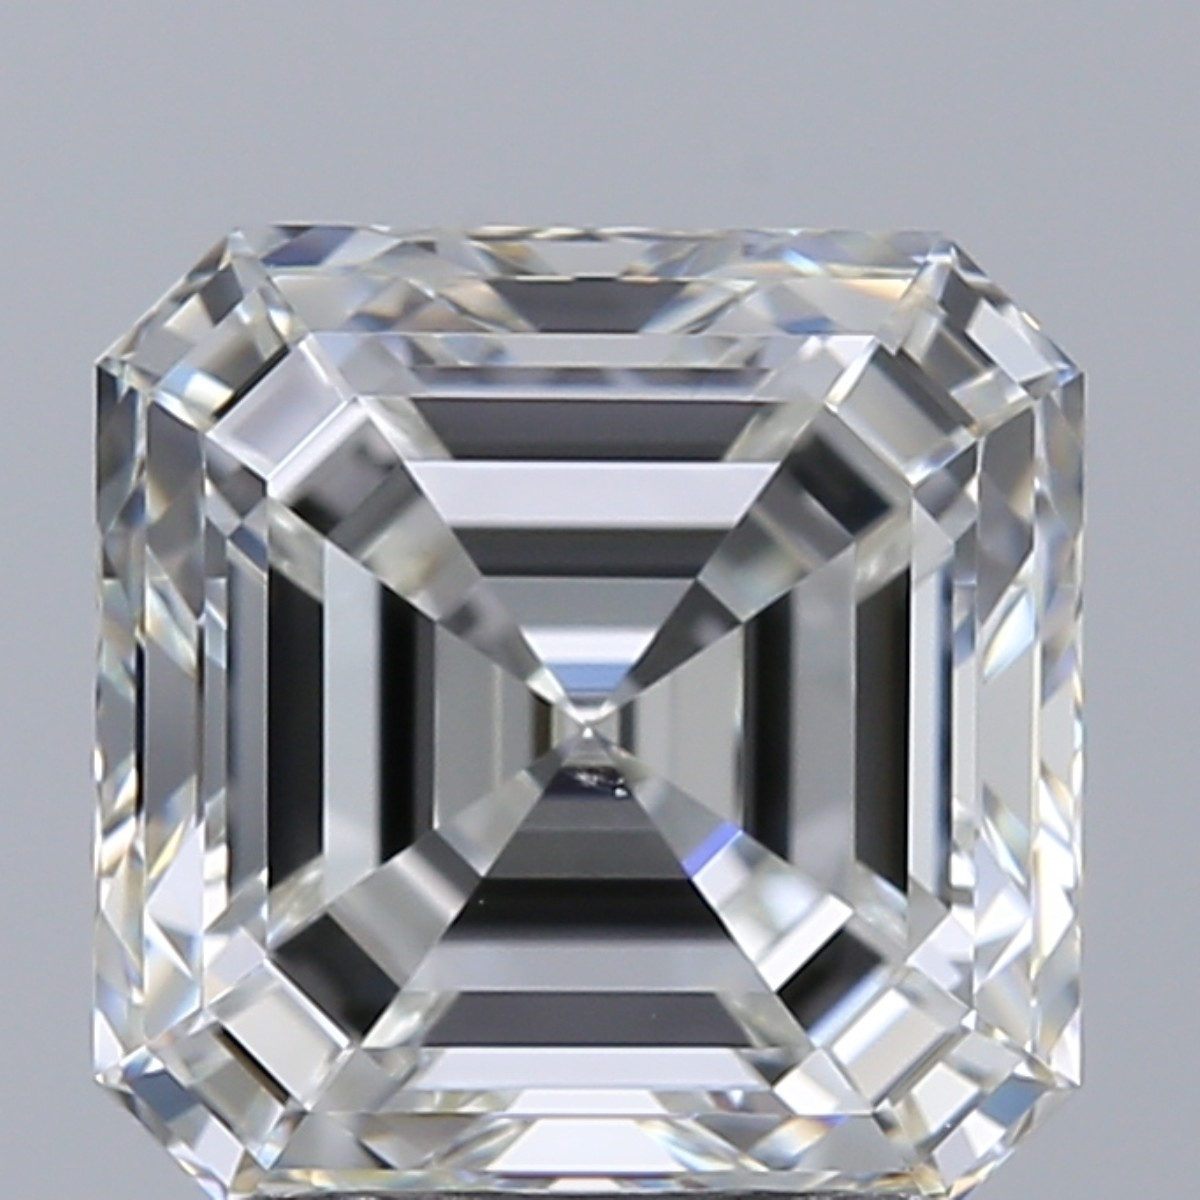 2.51 Carat Asscher Diamond (G/VS1)